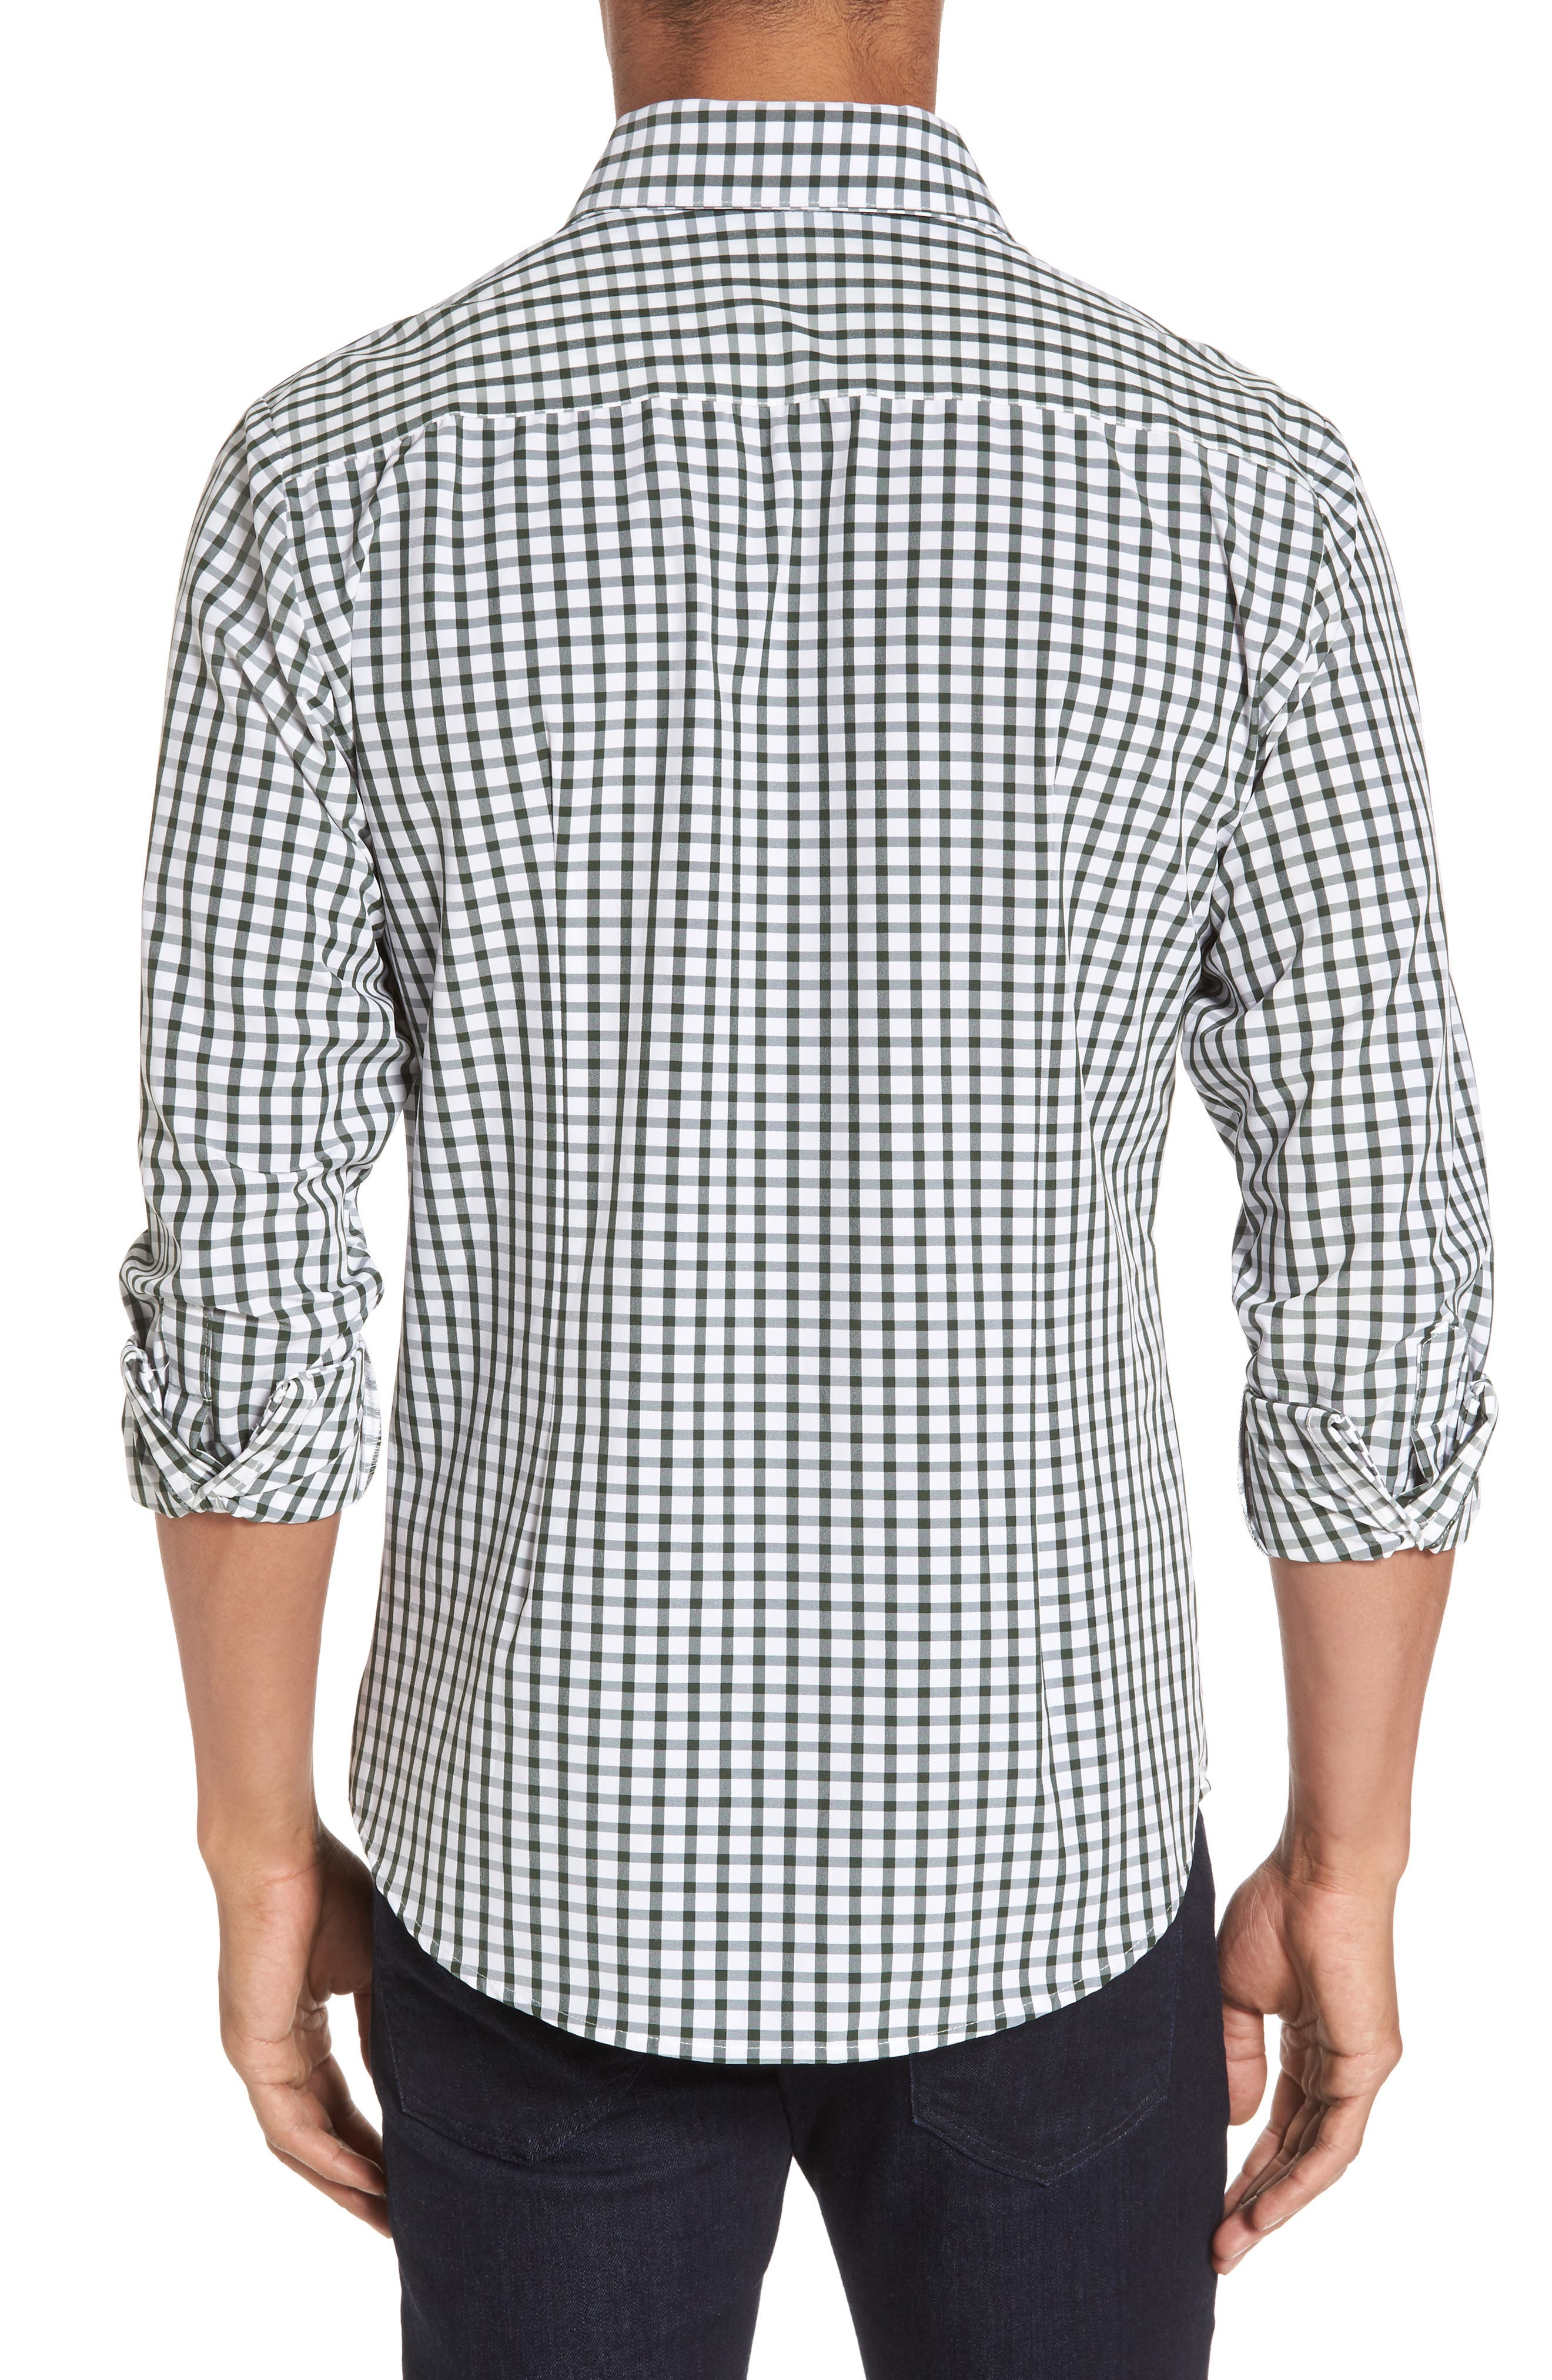 Turner Green Gingham Sport Shirt,                             Alternate thumbnail 3, color,                             Green